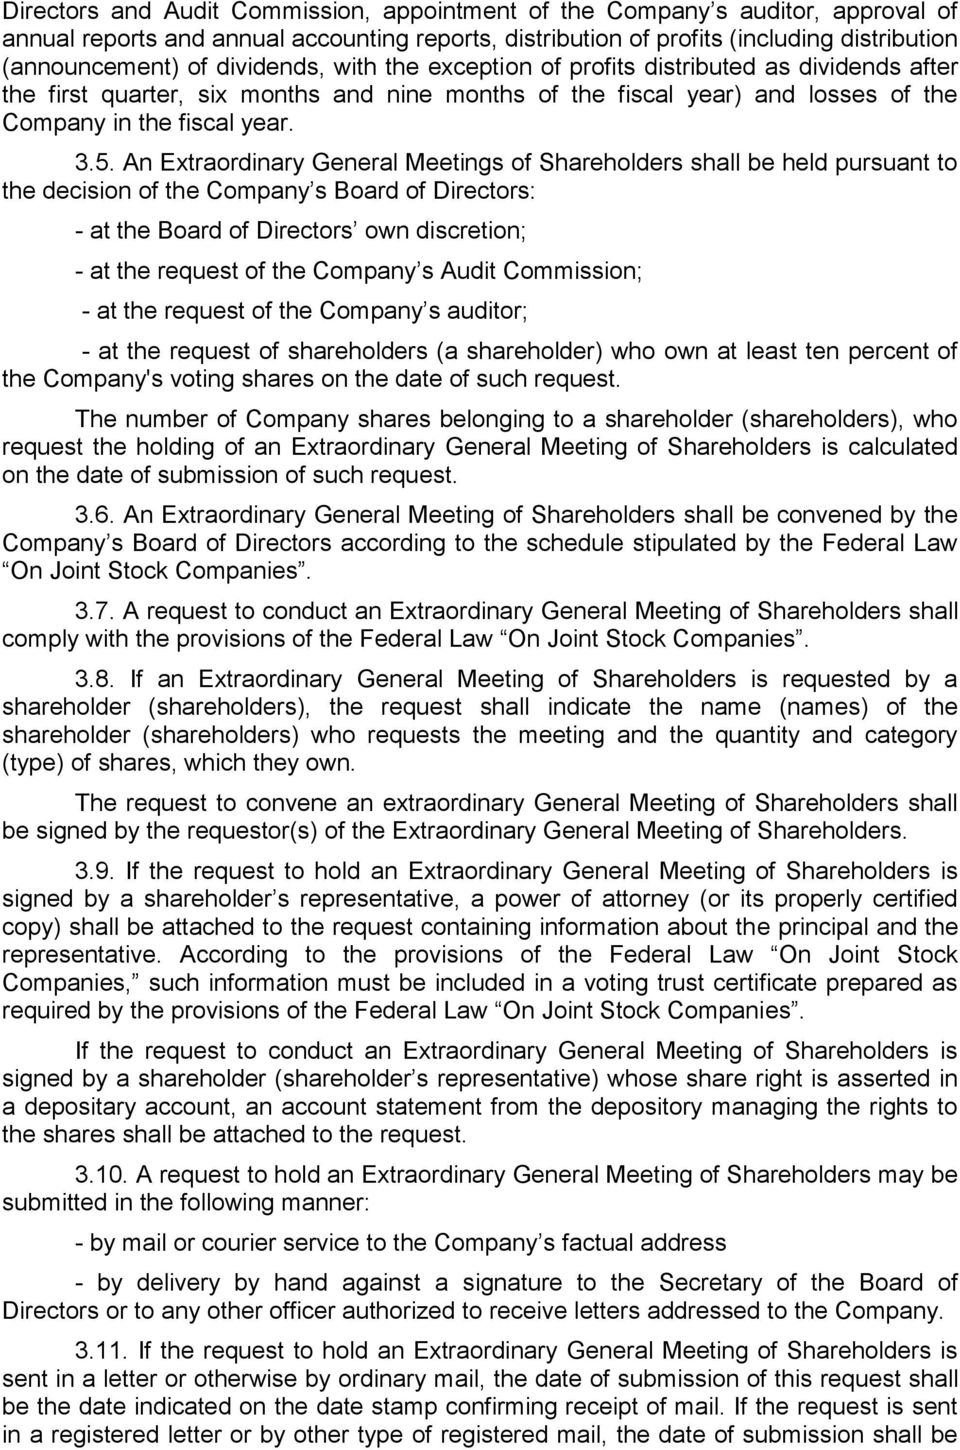 An Extraordinary General Meetings of Shareholders shall be held pursuant to the decision of the Company s Board of Directors: - at the Board of Directors own discretion; - at the request of the